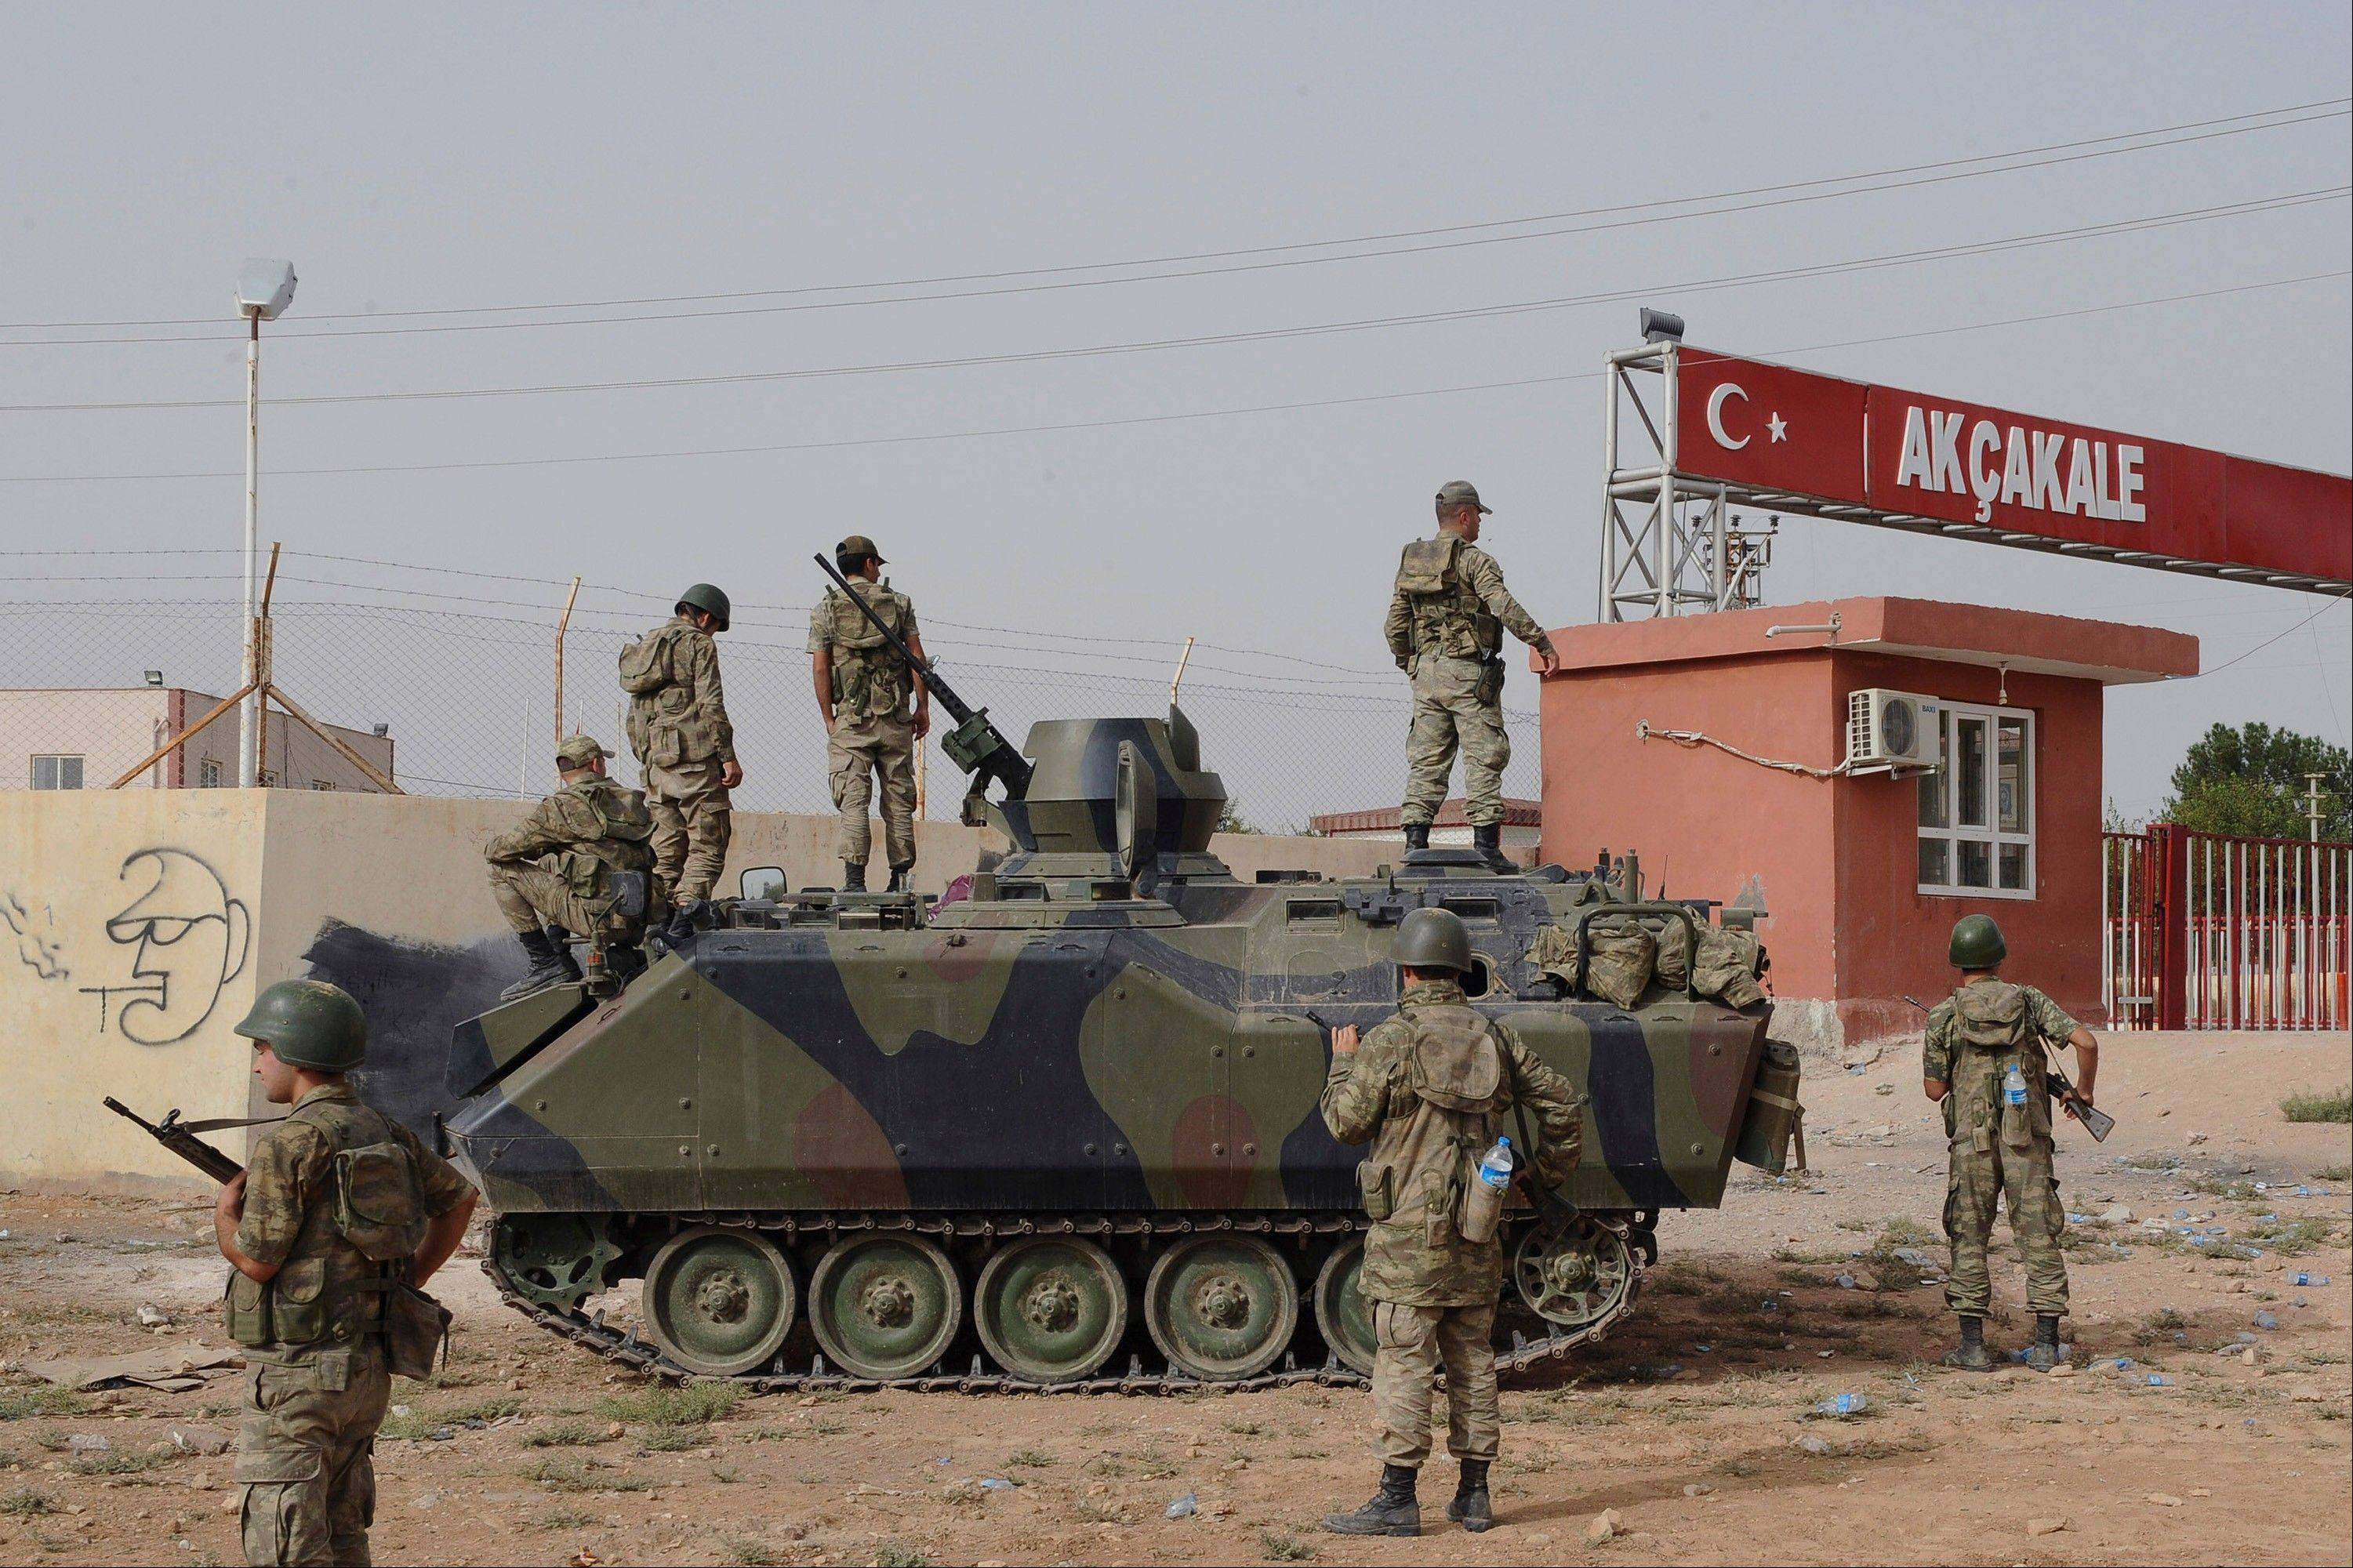 This is a Turkish military station at the border gate with Syria, across from Syrian rebel-controlled Tel Abyad town, in Akcakale, Turkey.